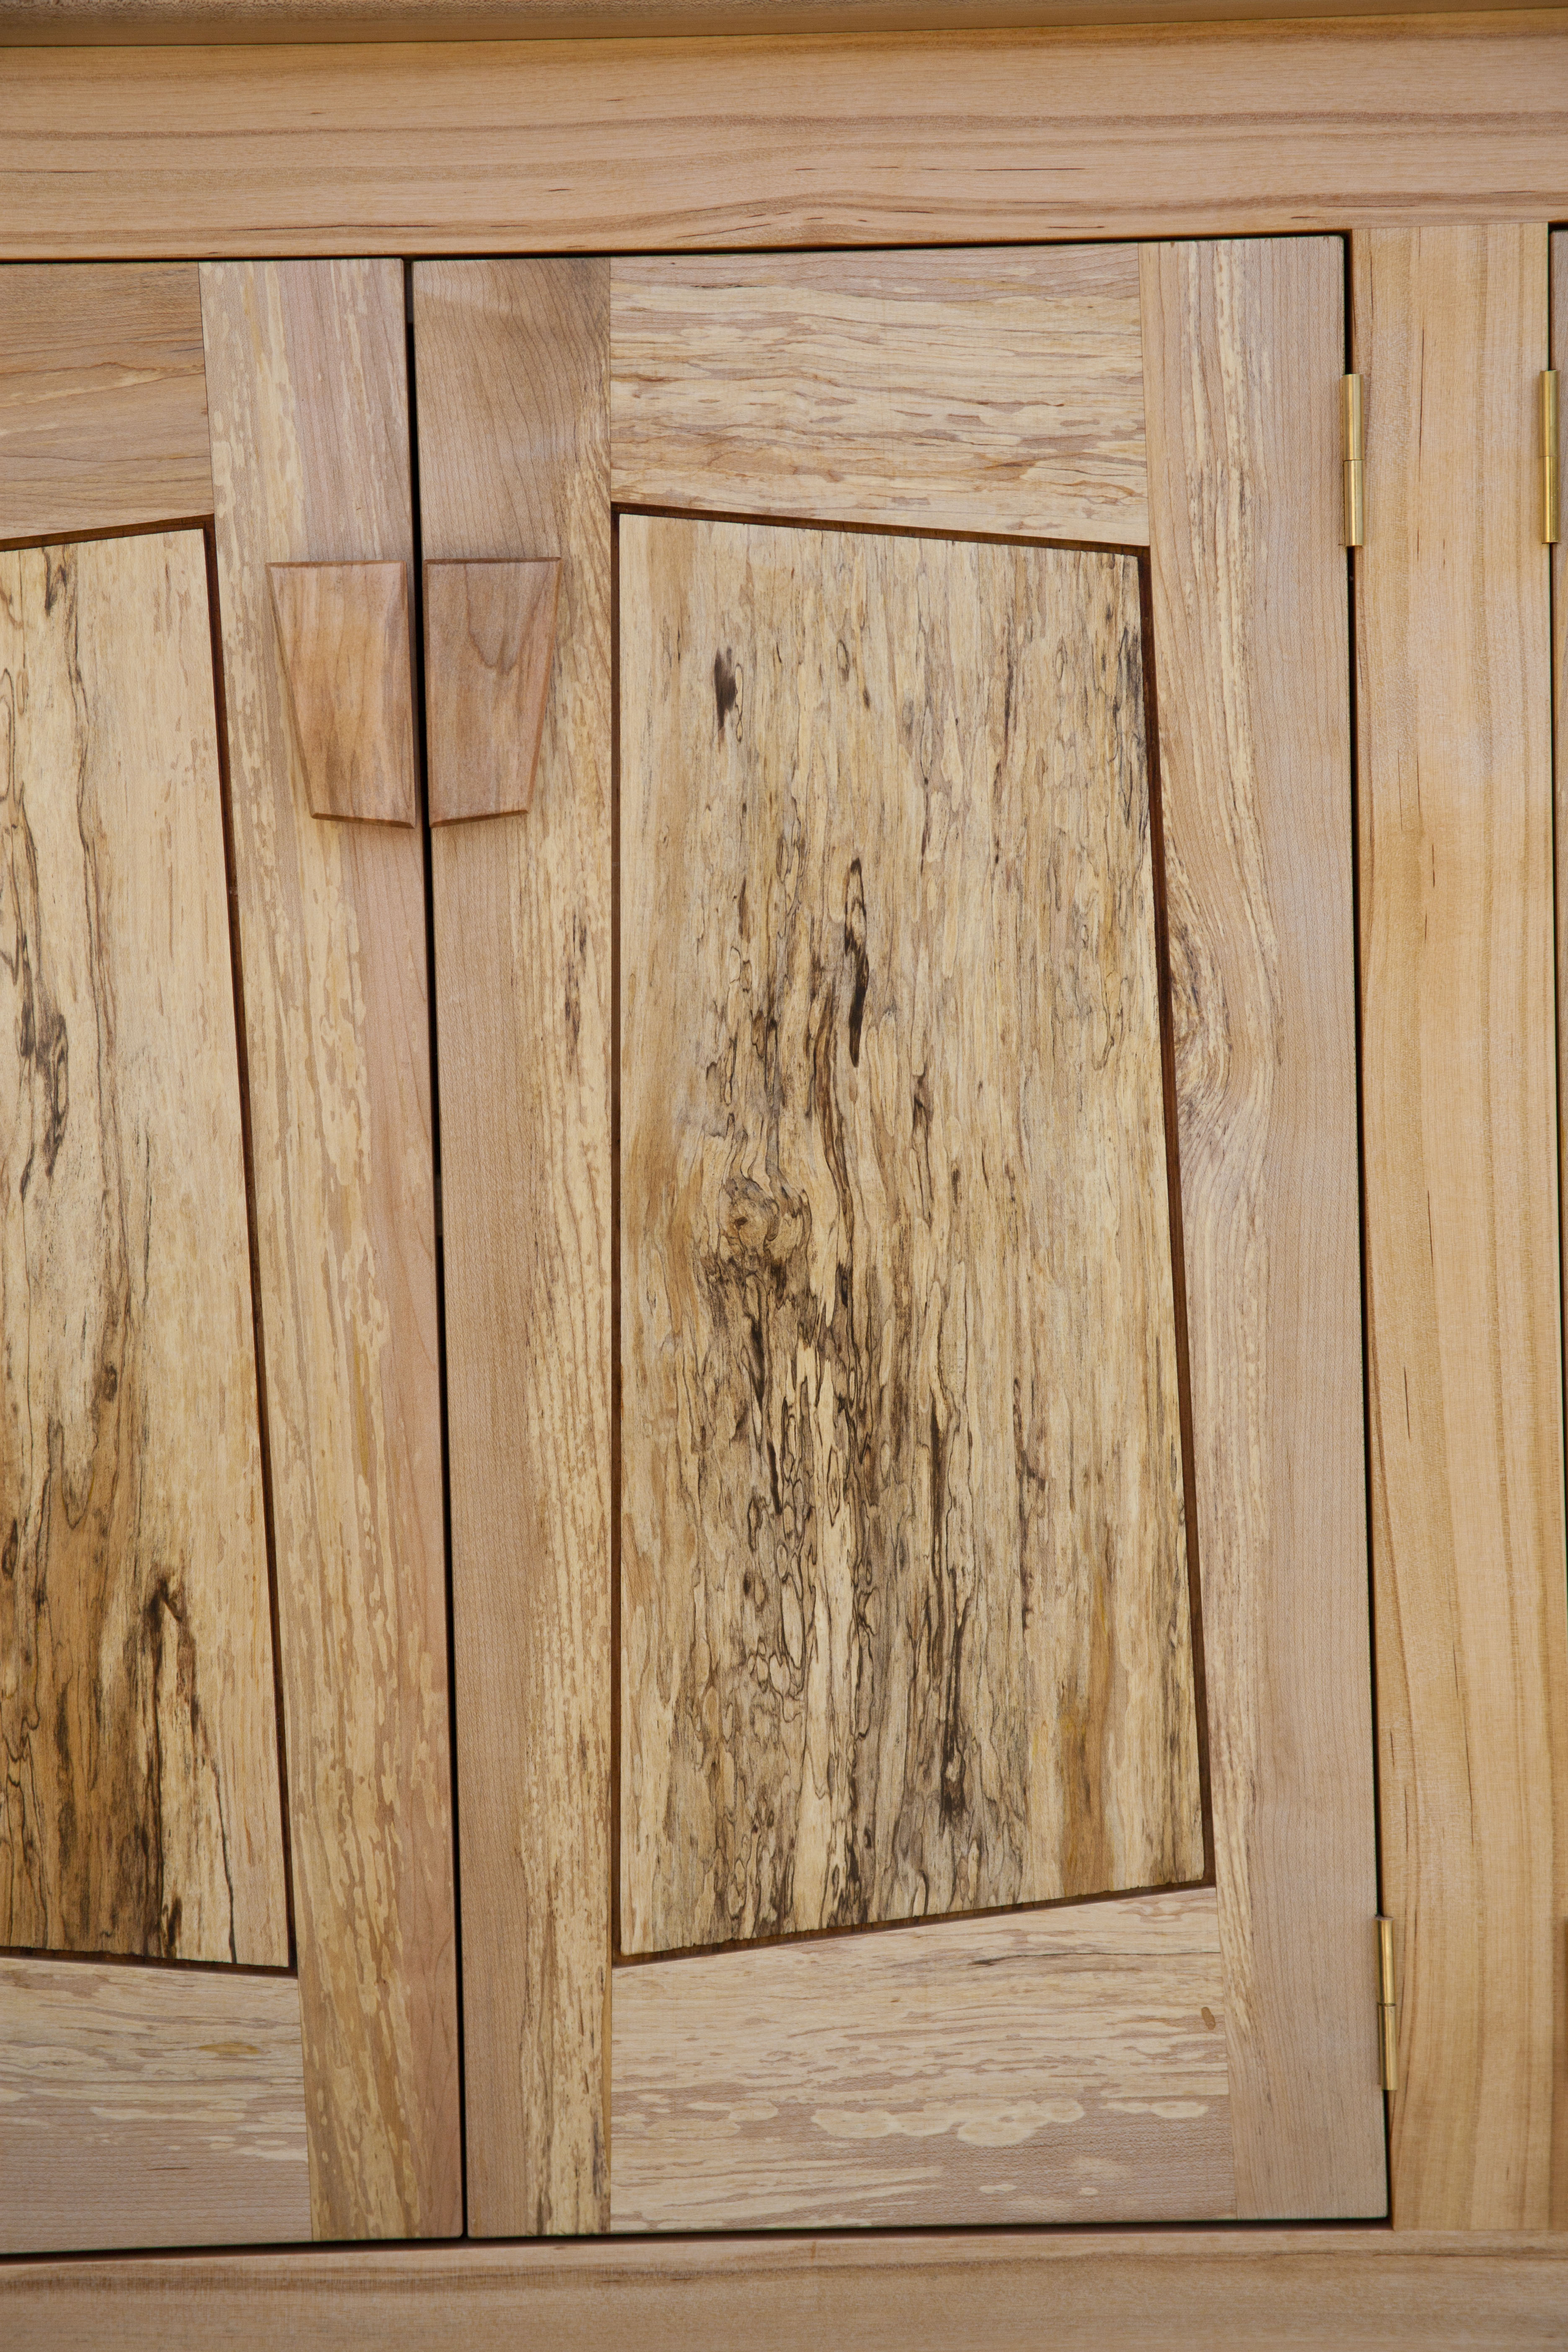 5616 #402914 Spalted Maple Door Panels And Frames picture/photo Maple Doors 11693744